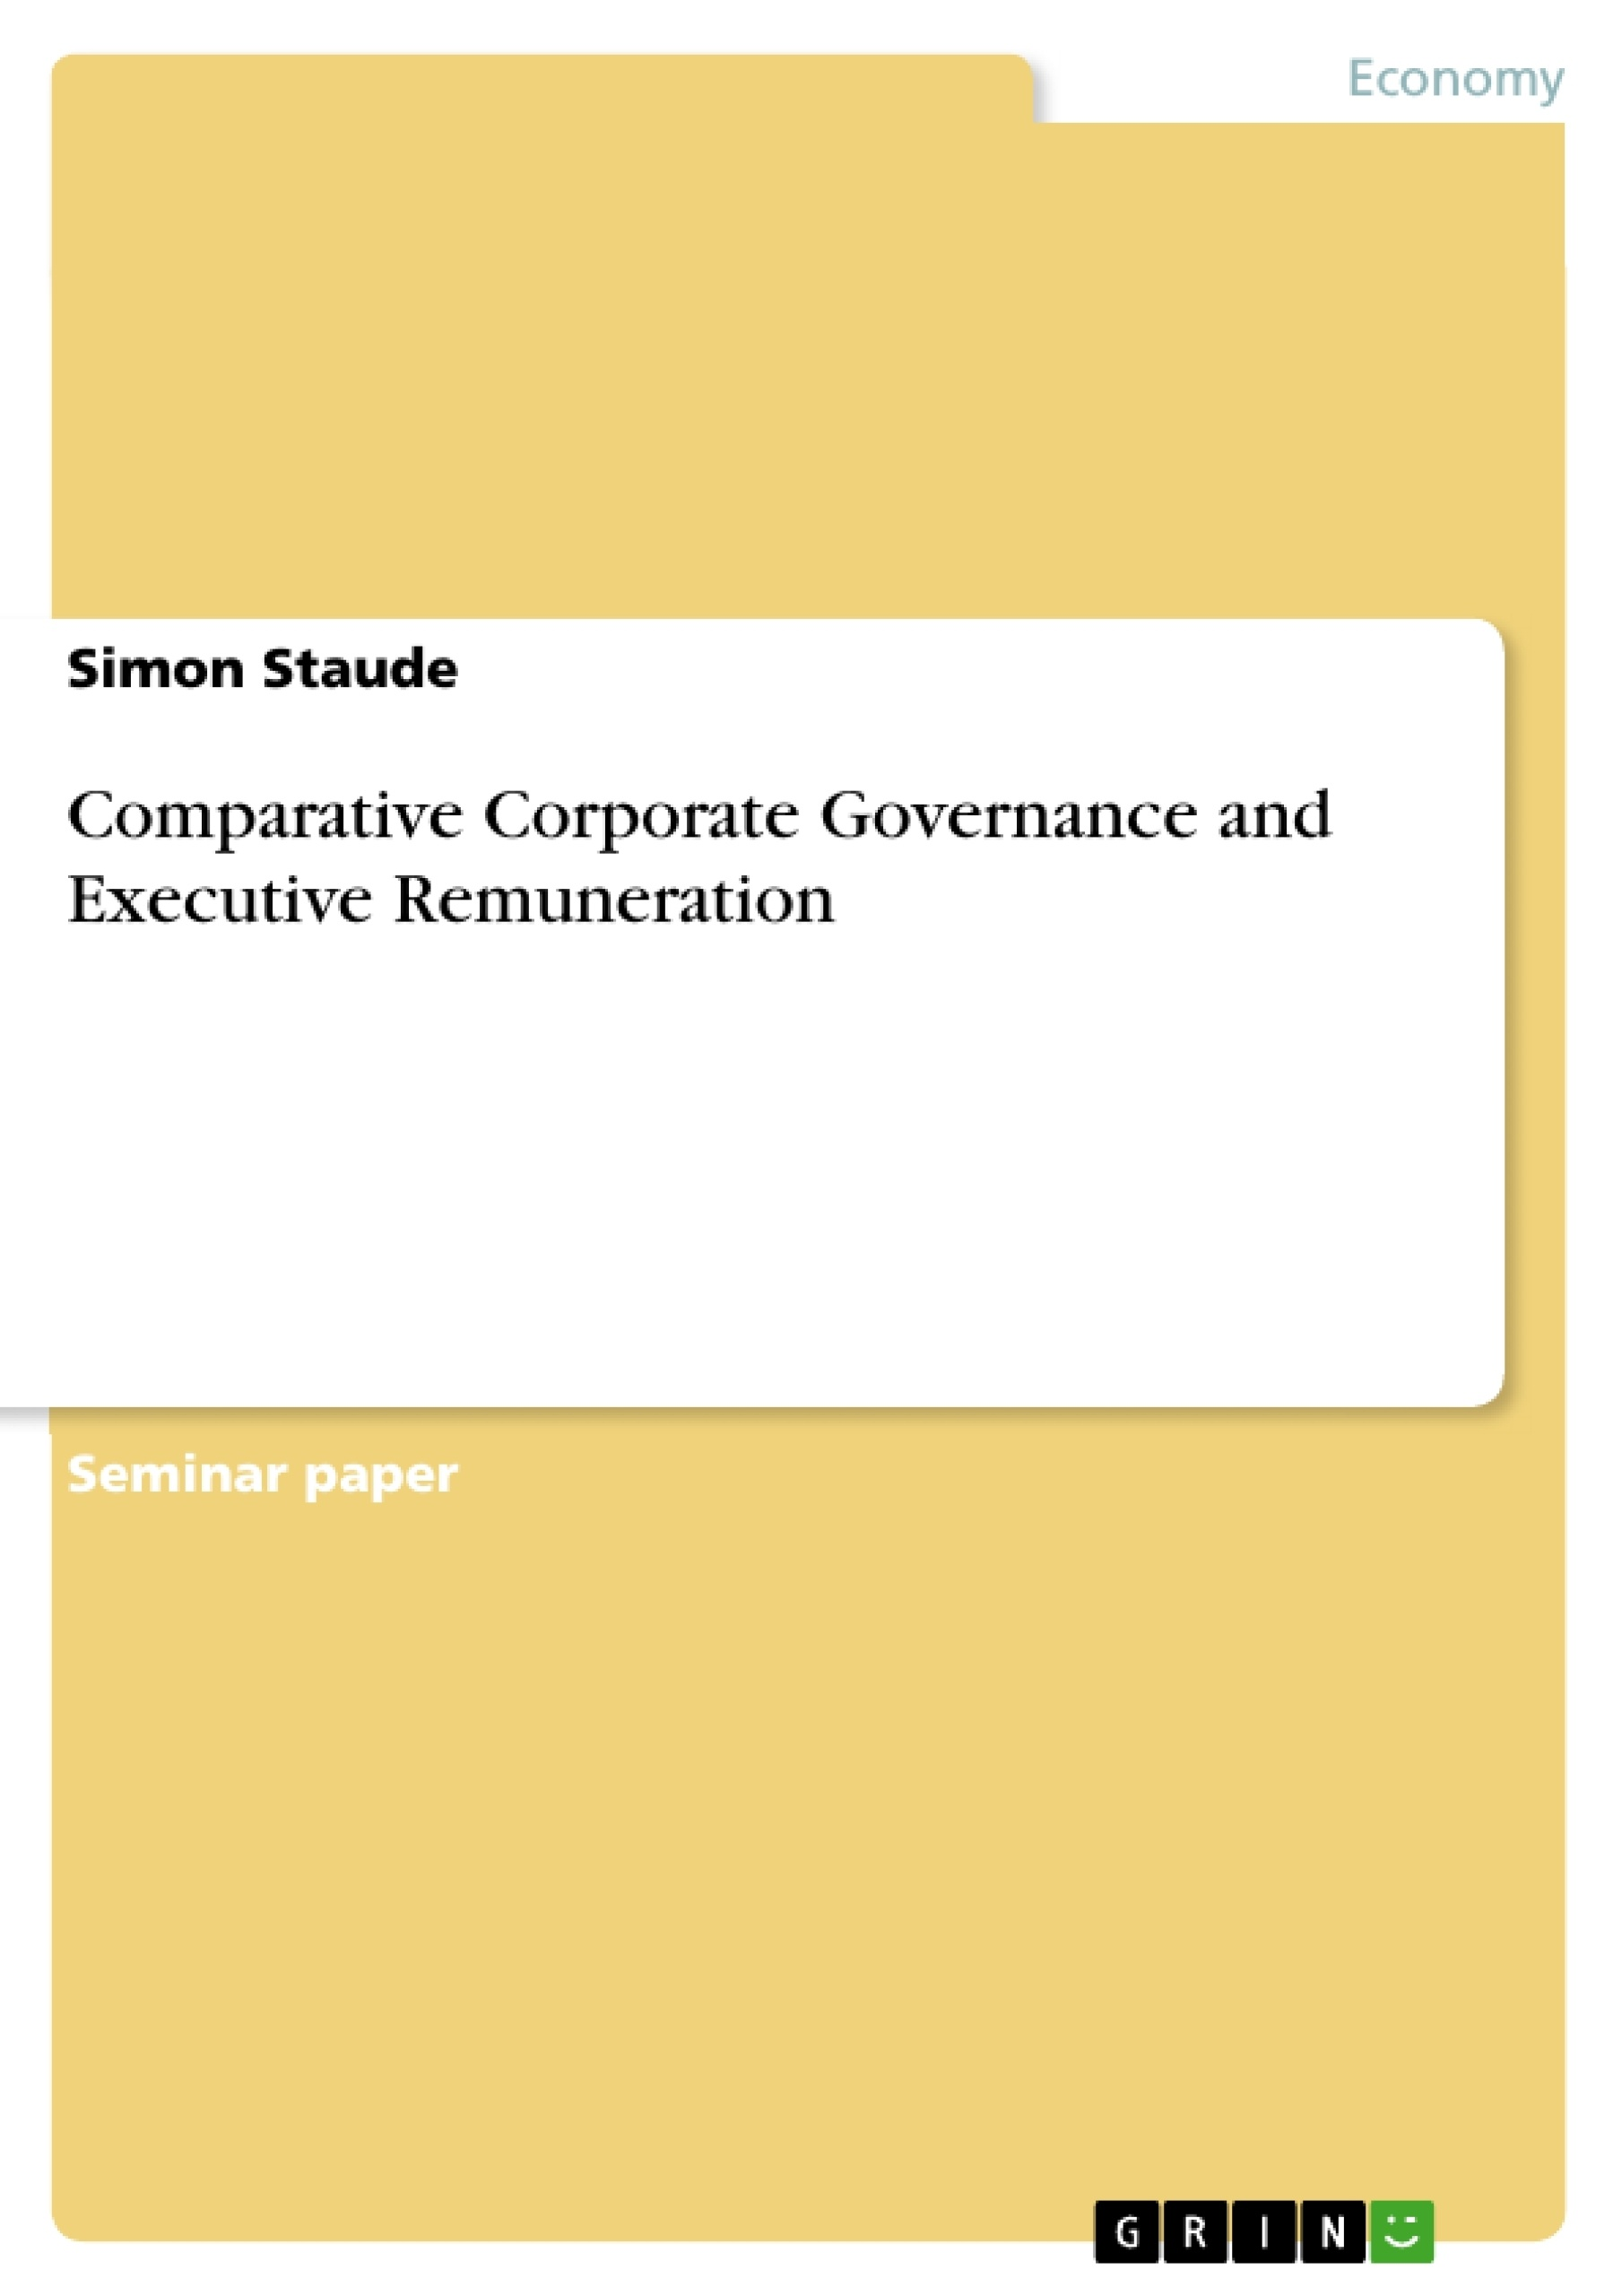 Title: Comparative Corporate Governance and Executive Remuneration